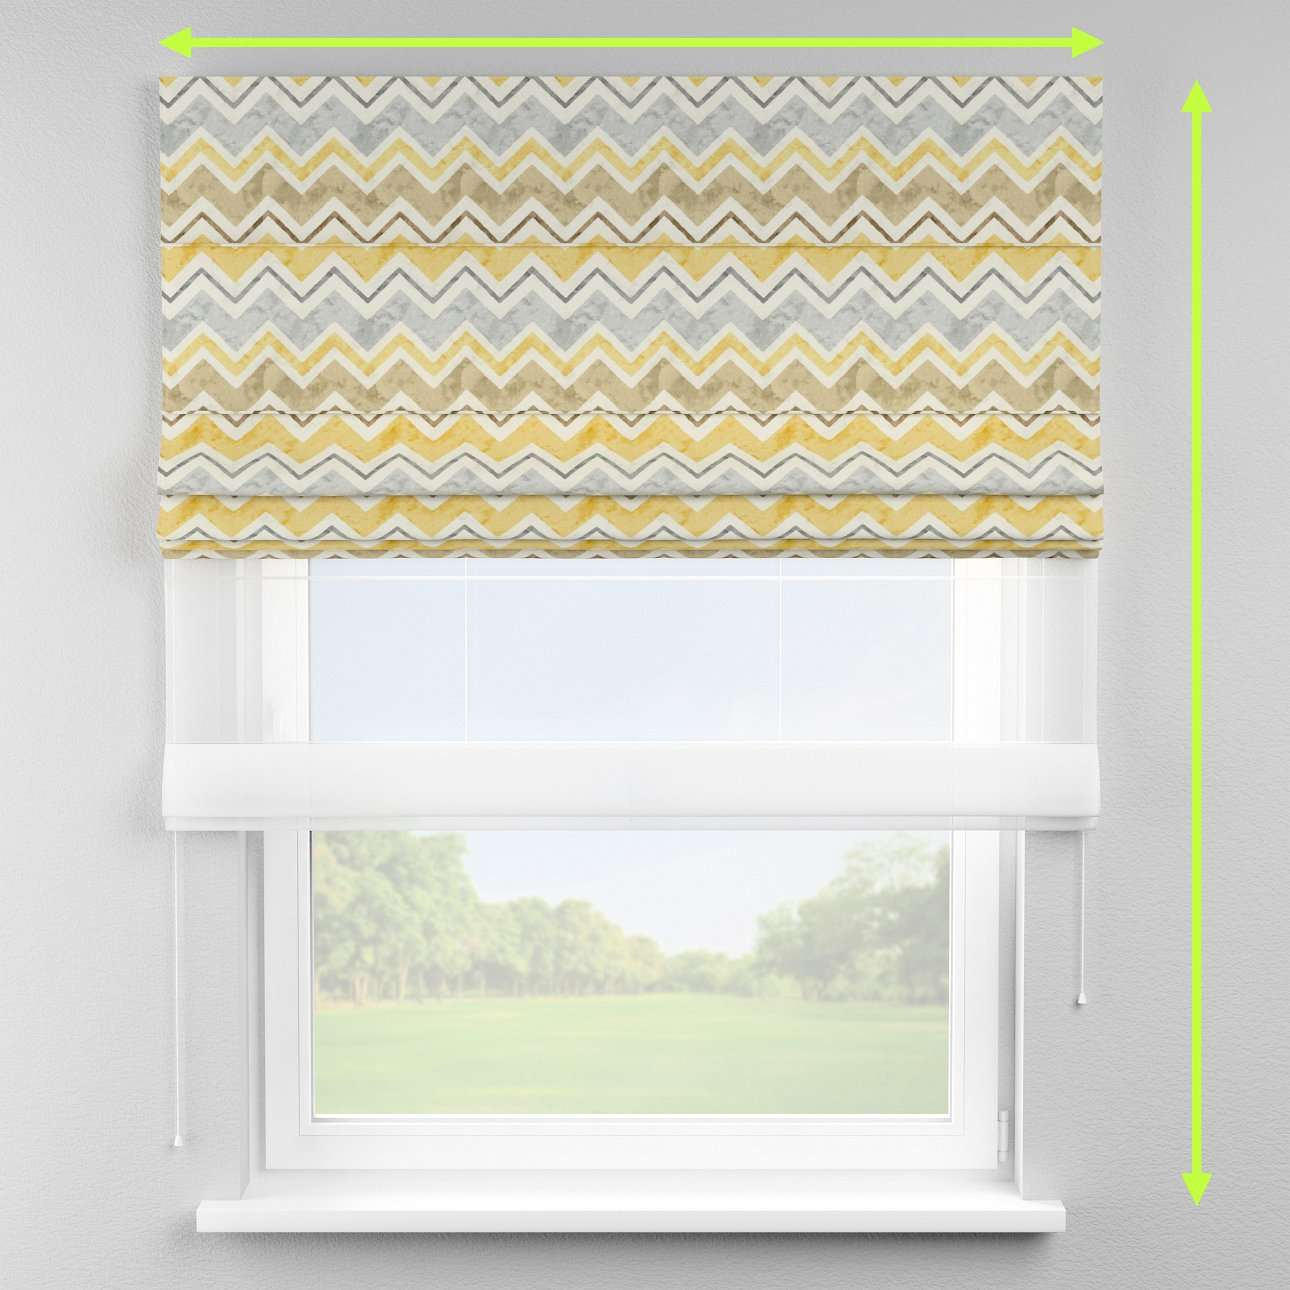 Voile and fabric roman blind (DUO II) in collection Acapulco, fabric: 141-39